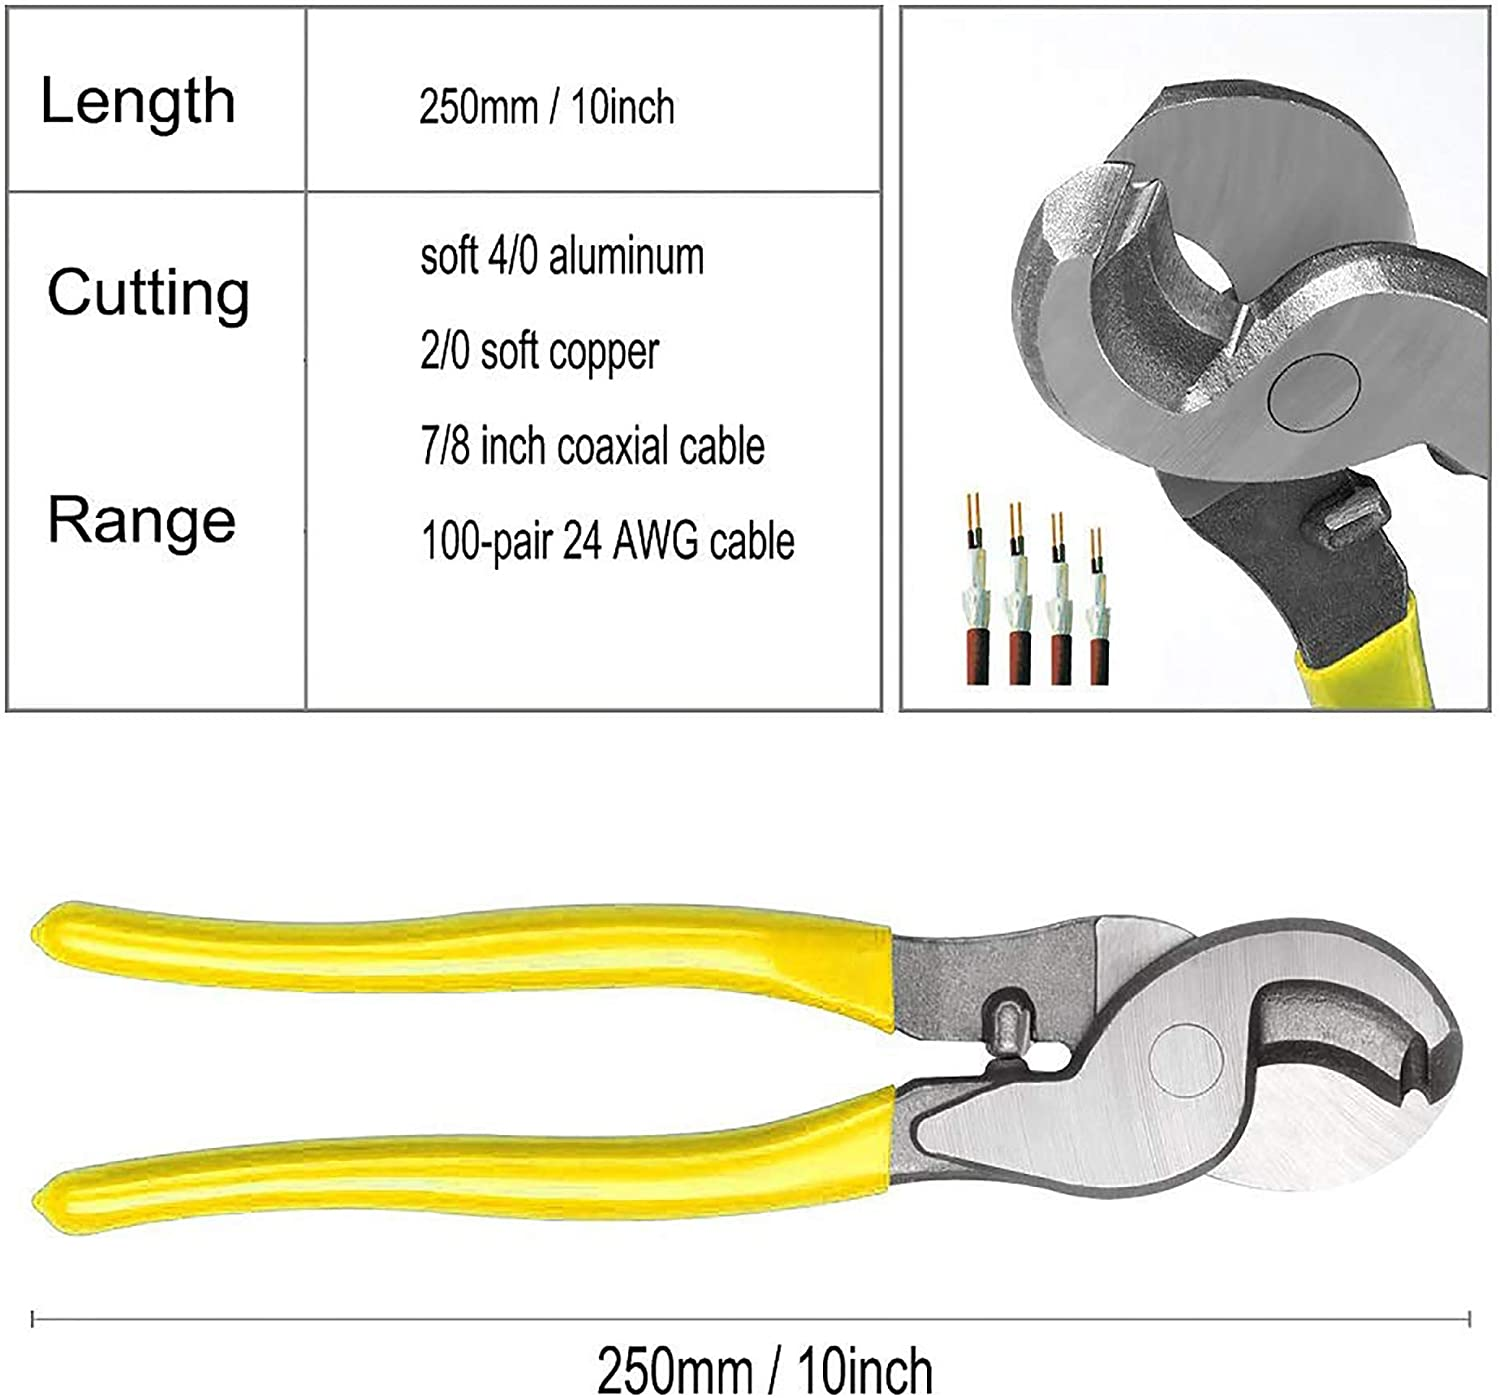 KOTTO Battery Cable Lug Crimper Tool with Storage Bag